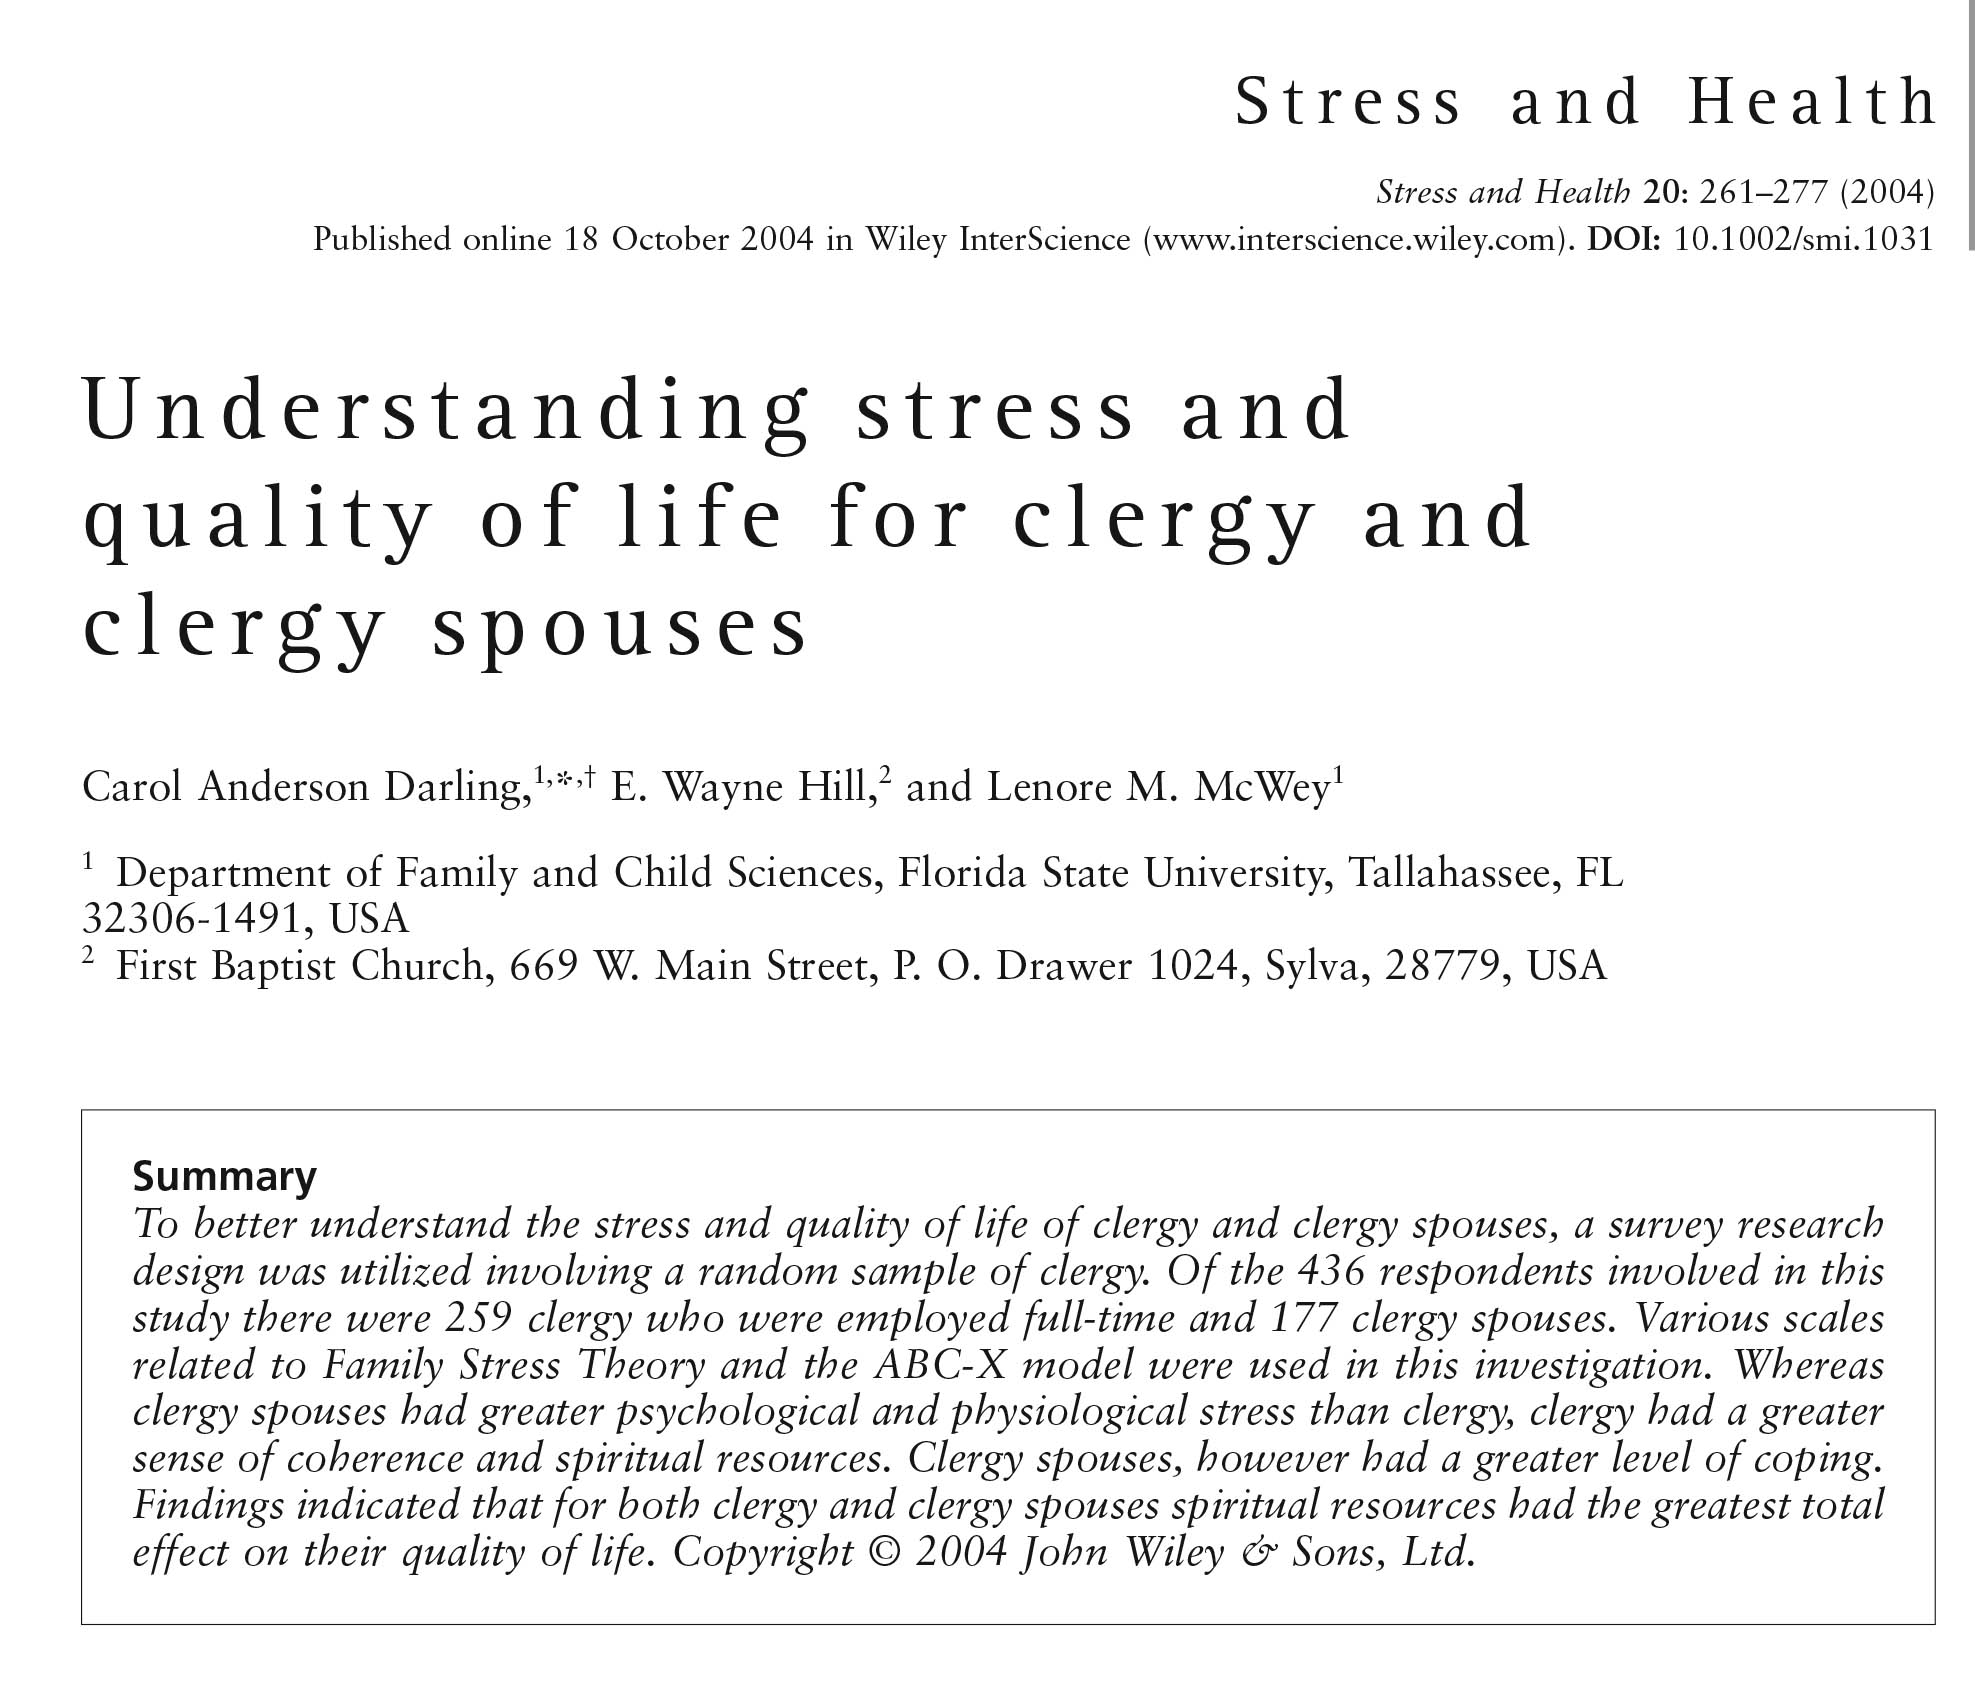 Darling- Understanding stress and quality of life for clergy and clergy spouses-COVER.jpg